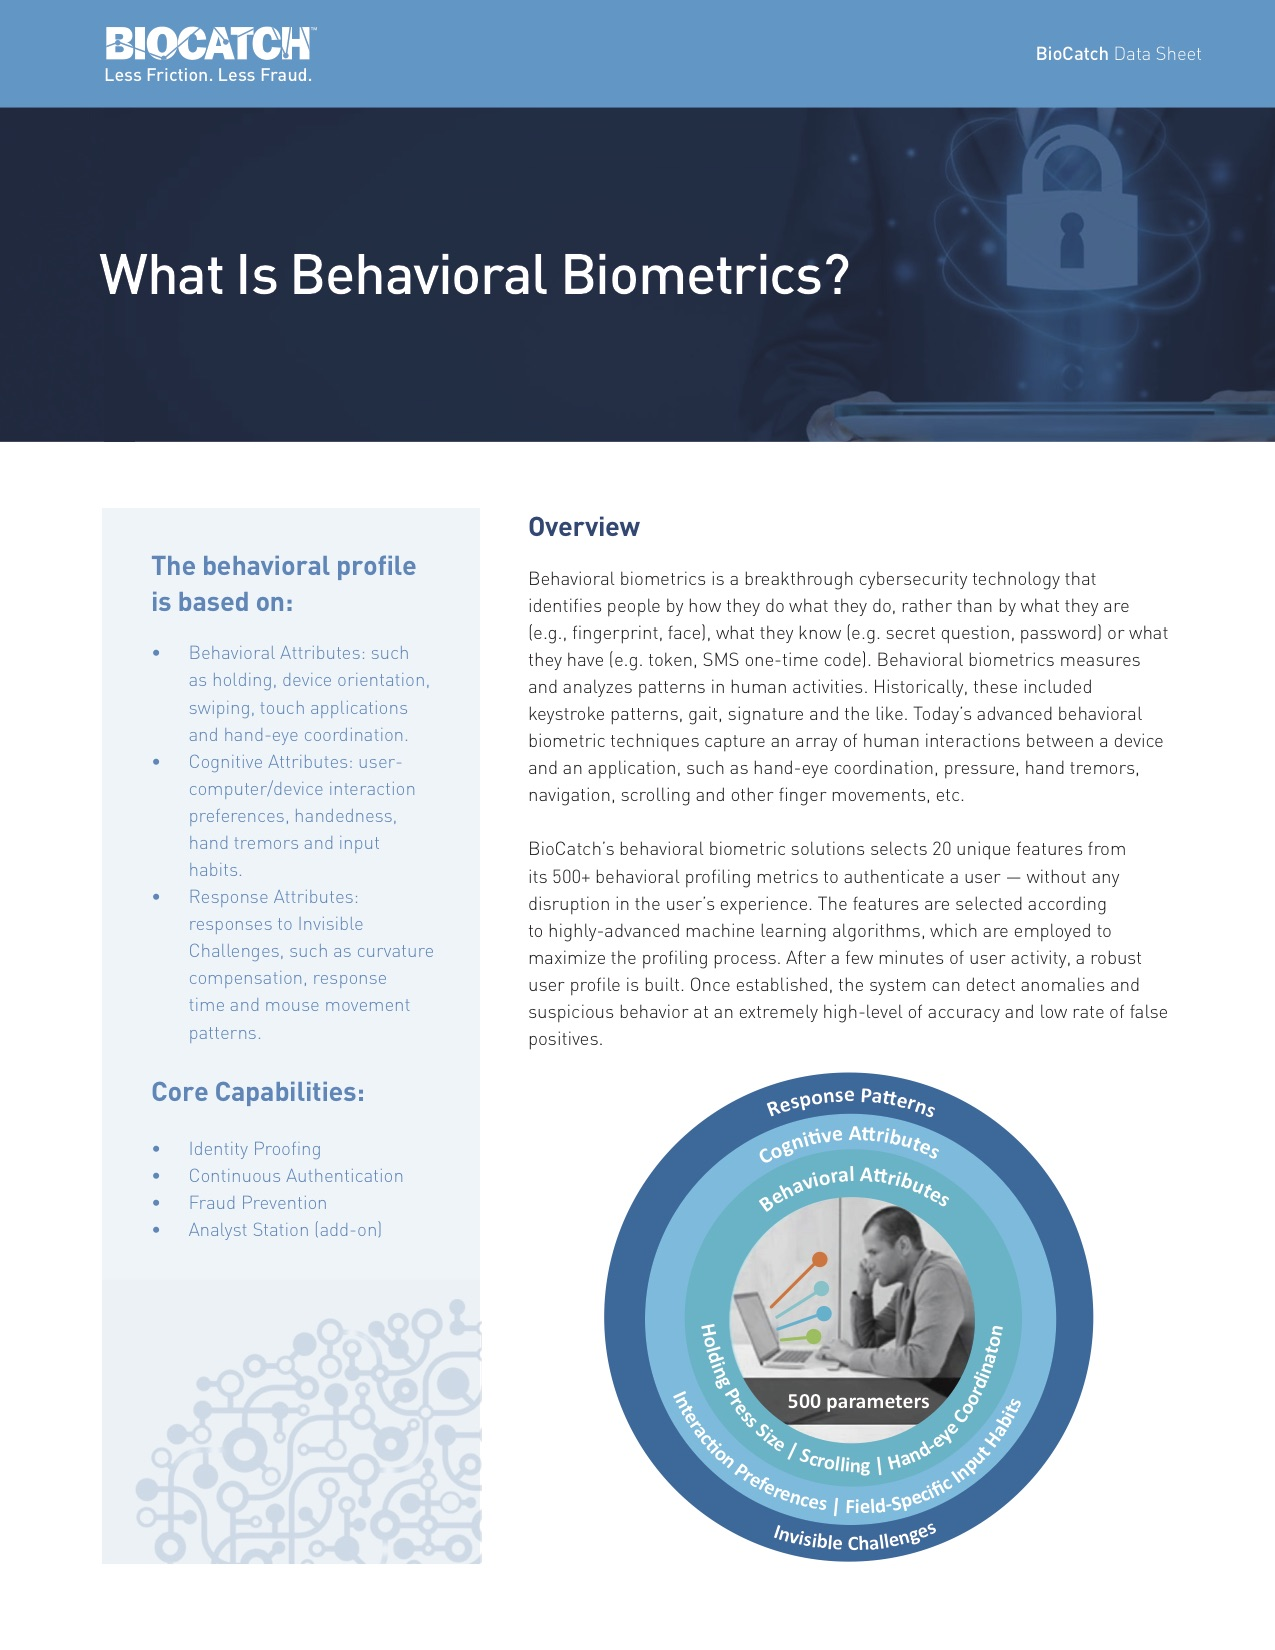 What is Behavioral Biometrics